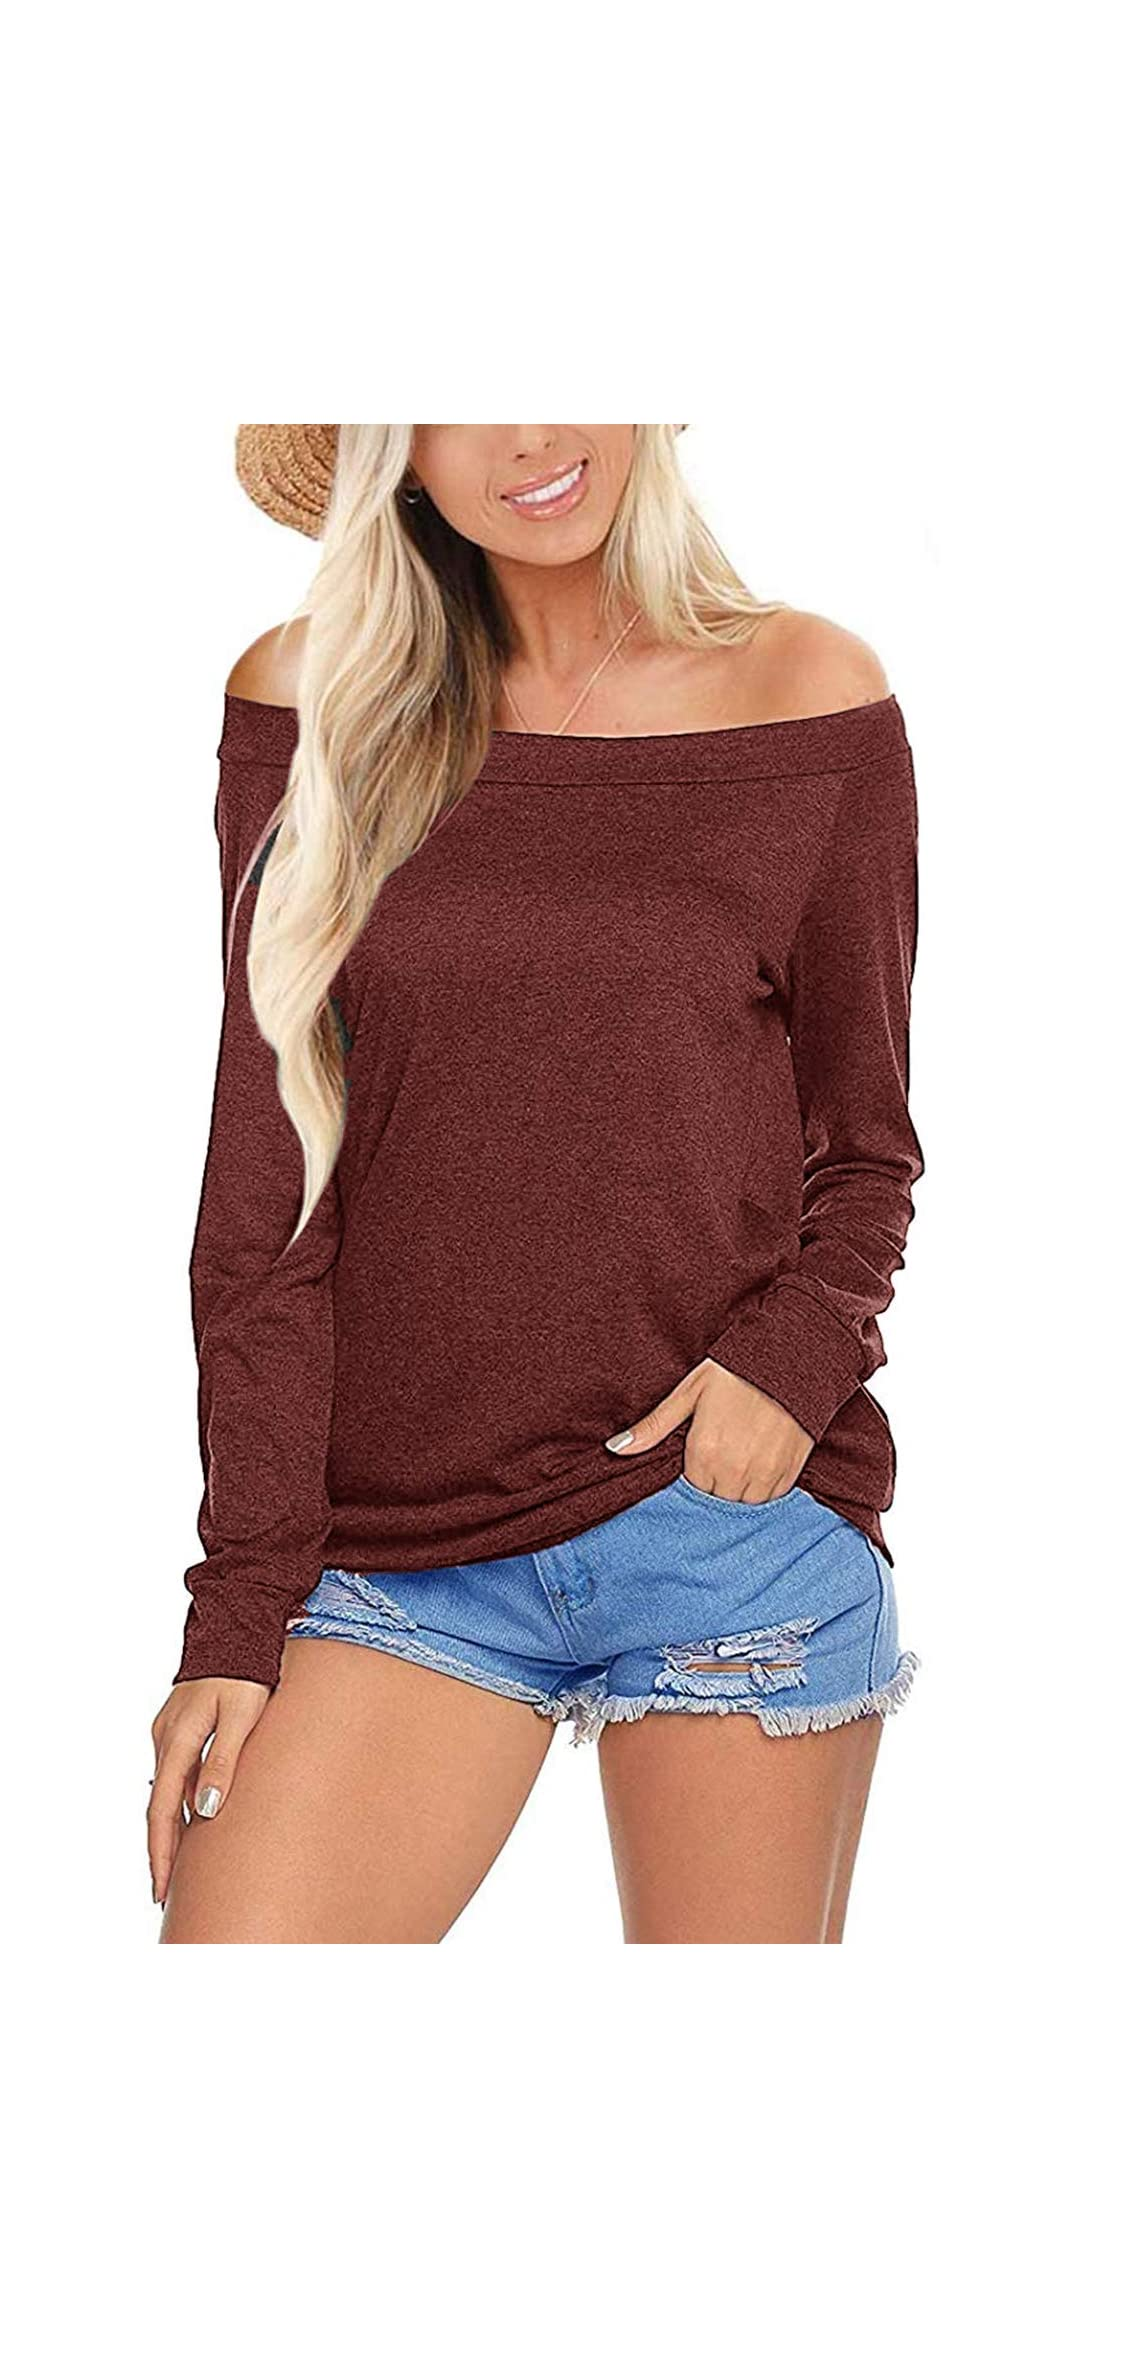 Womens Off Shoulder Tops Long Sleeve Boat Neck Casual T